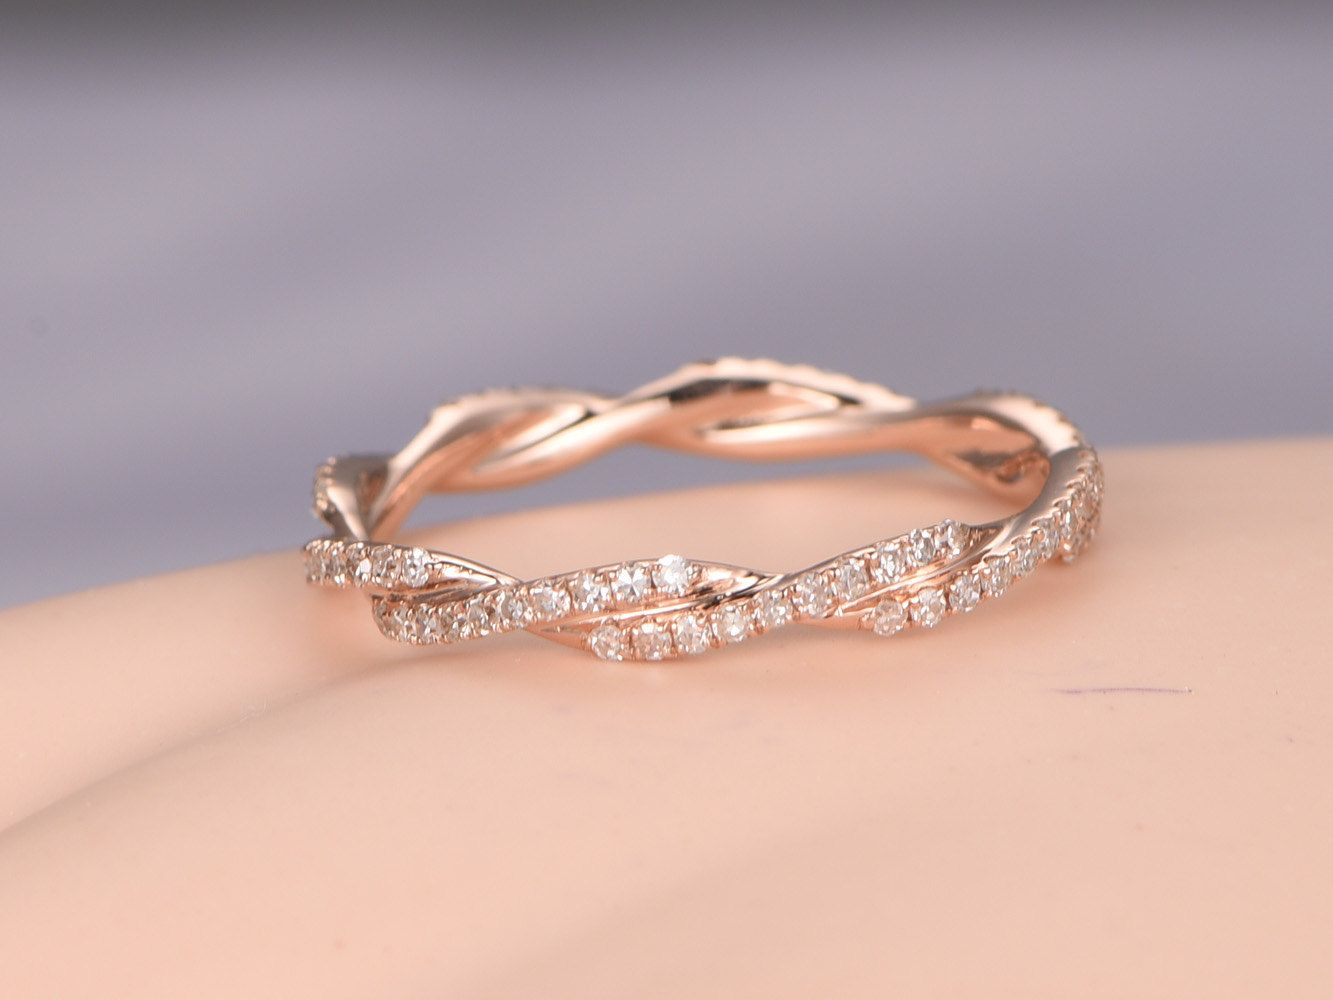 online couple infinity cb with ziveg bands design sterling buy rings made category swarovski silver zirconia